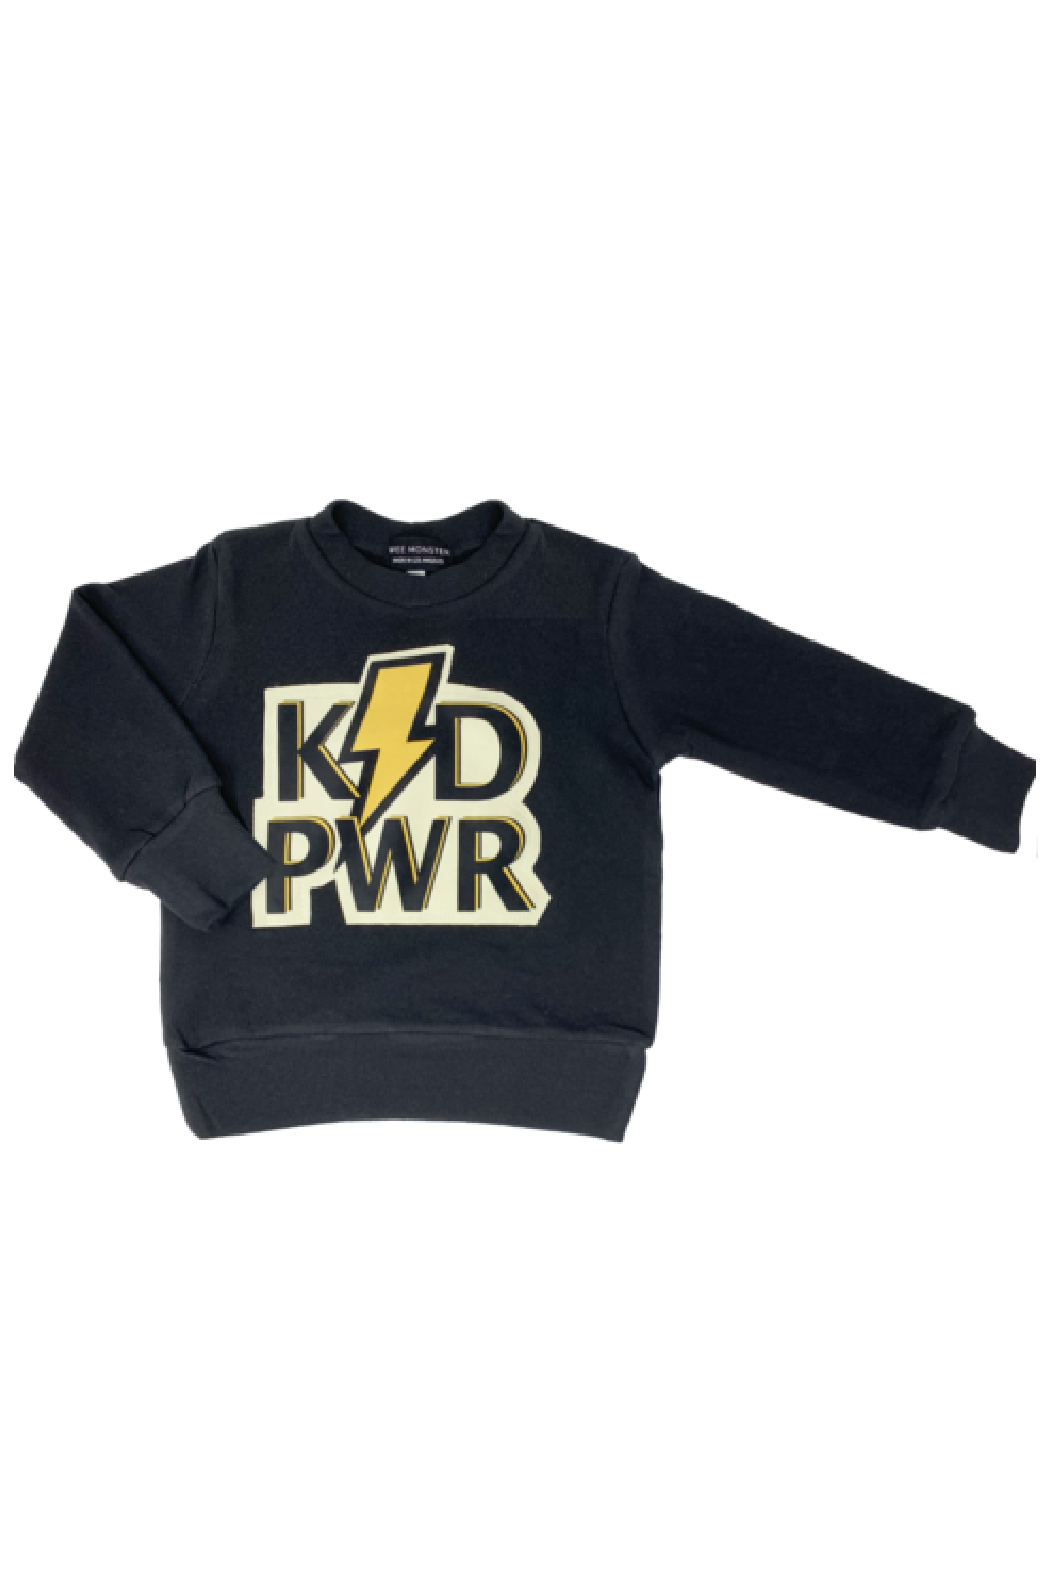 Wee Monster KID PWR Sweatshirt - Front Cropped Image